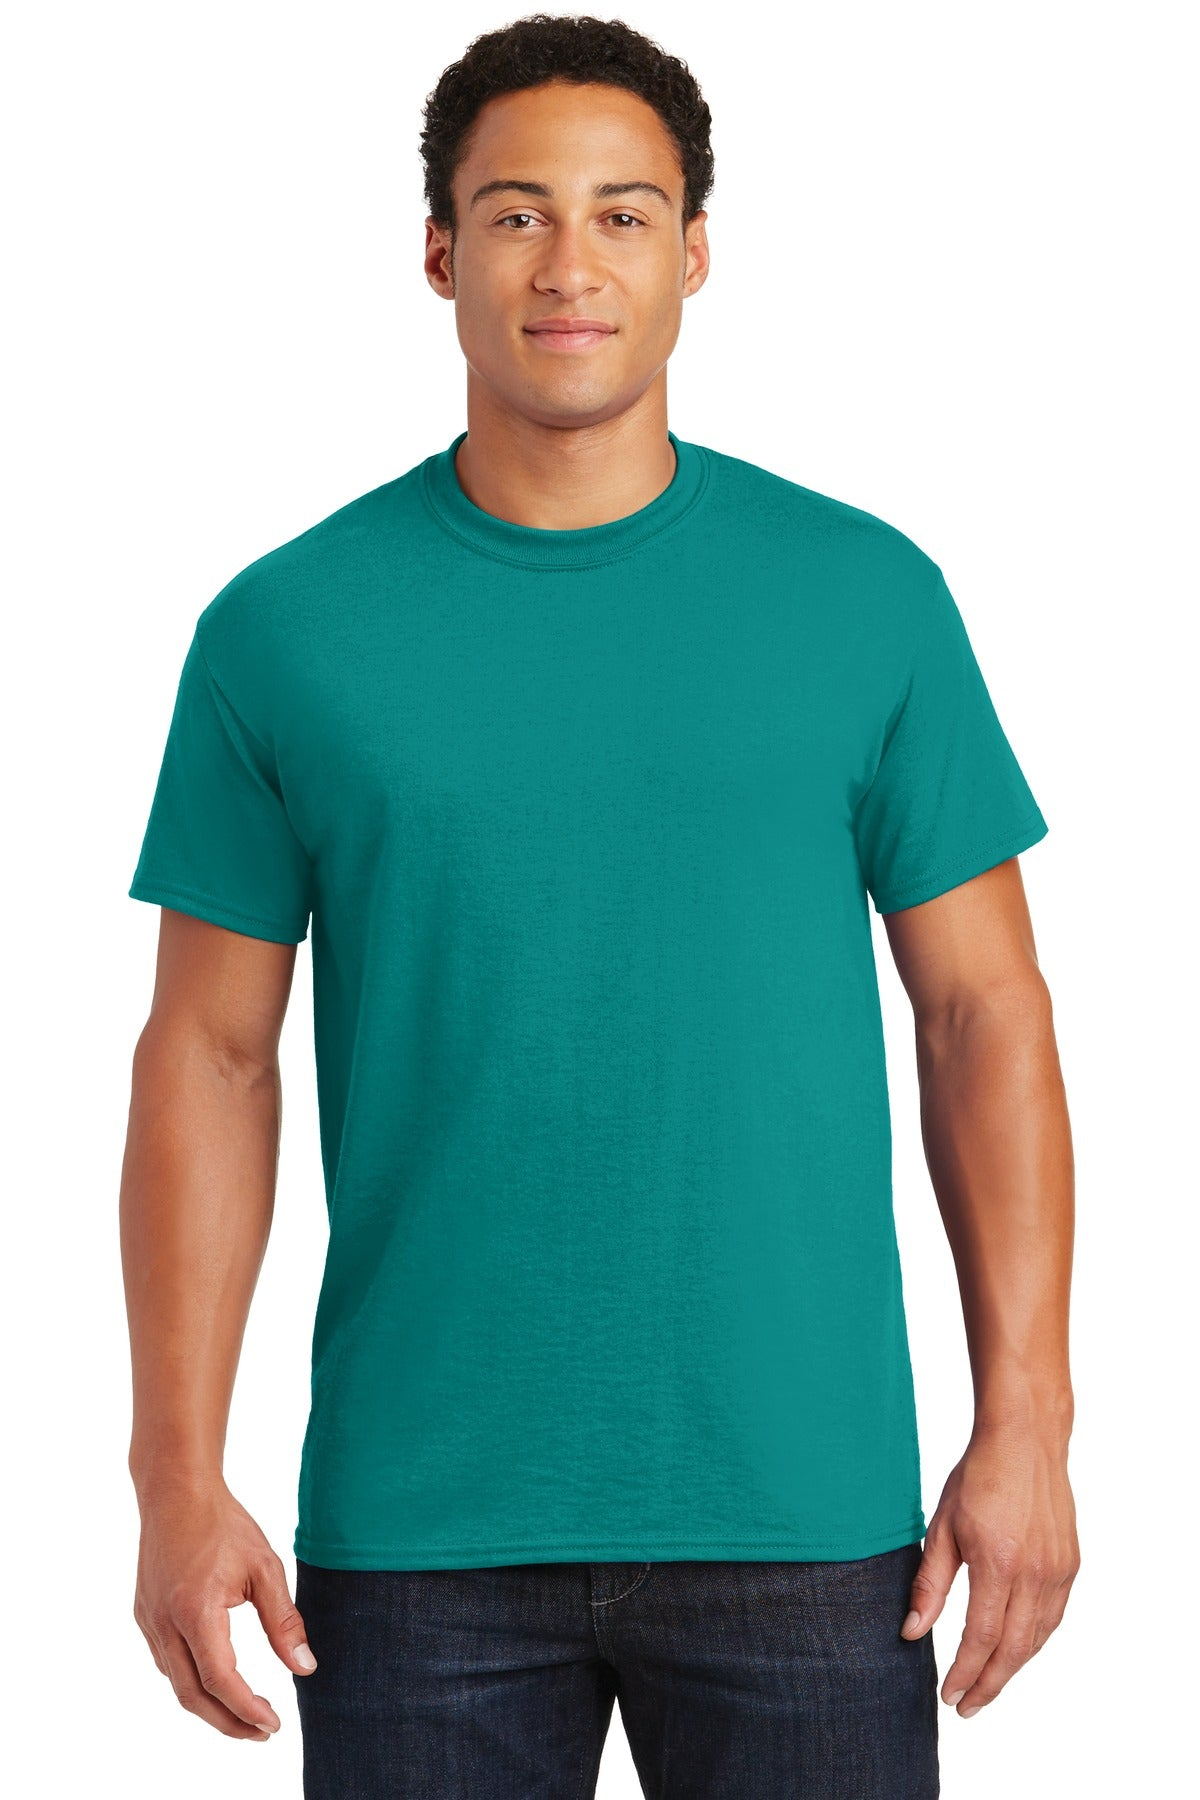 Jade Dome Gildan DryBlend 50 Cotton/50 Poly T-Shirt.